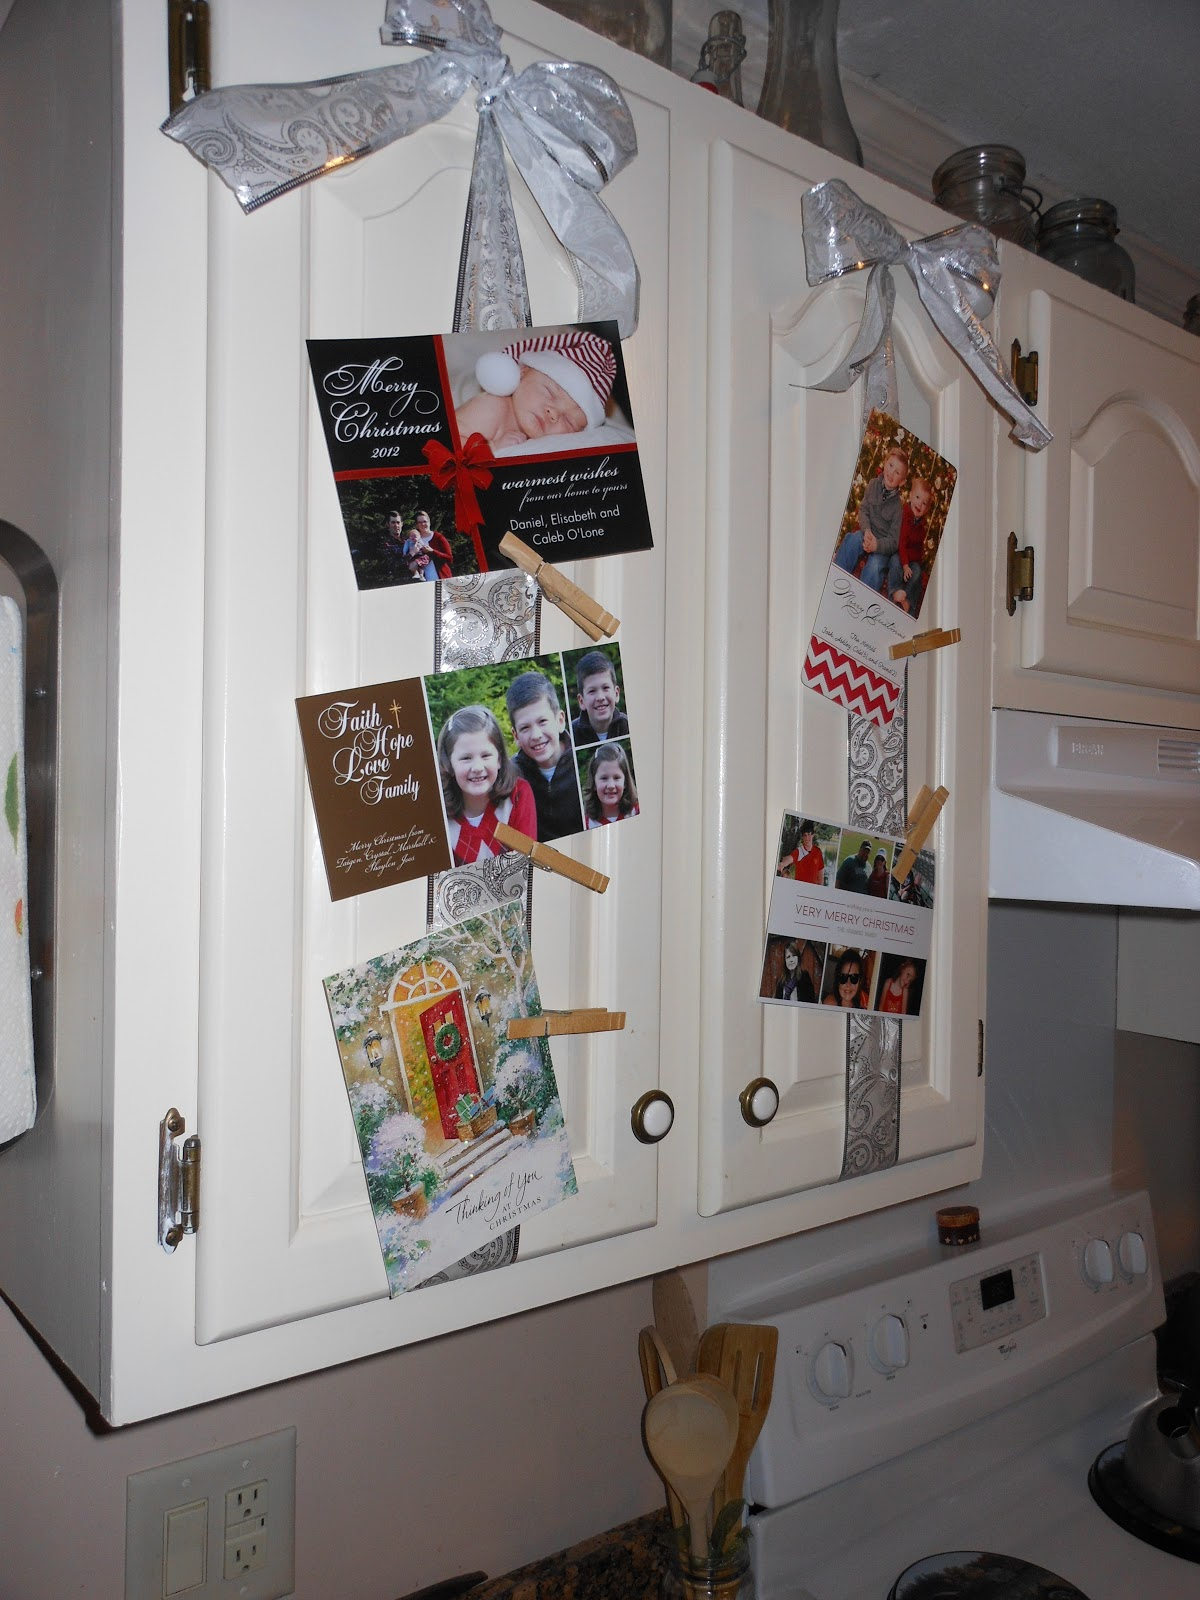 Life in New Hampshire: Hanging Christmas Cards/Pictures